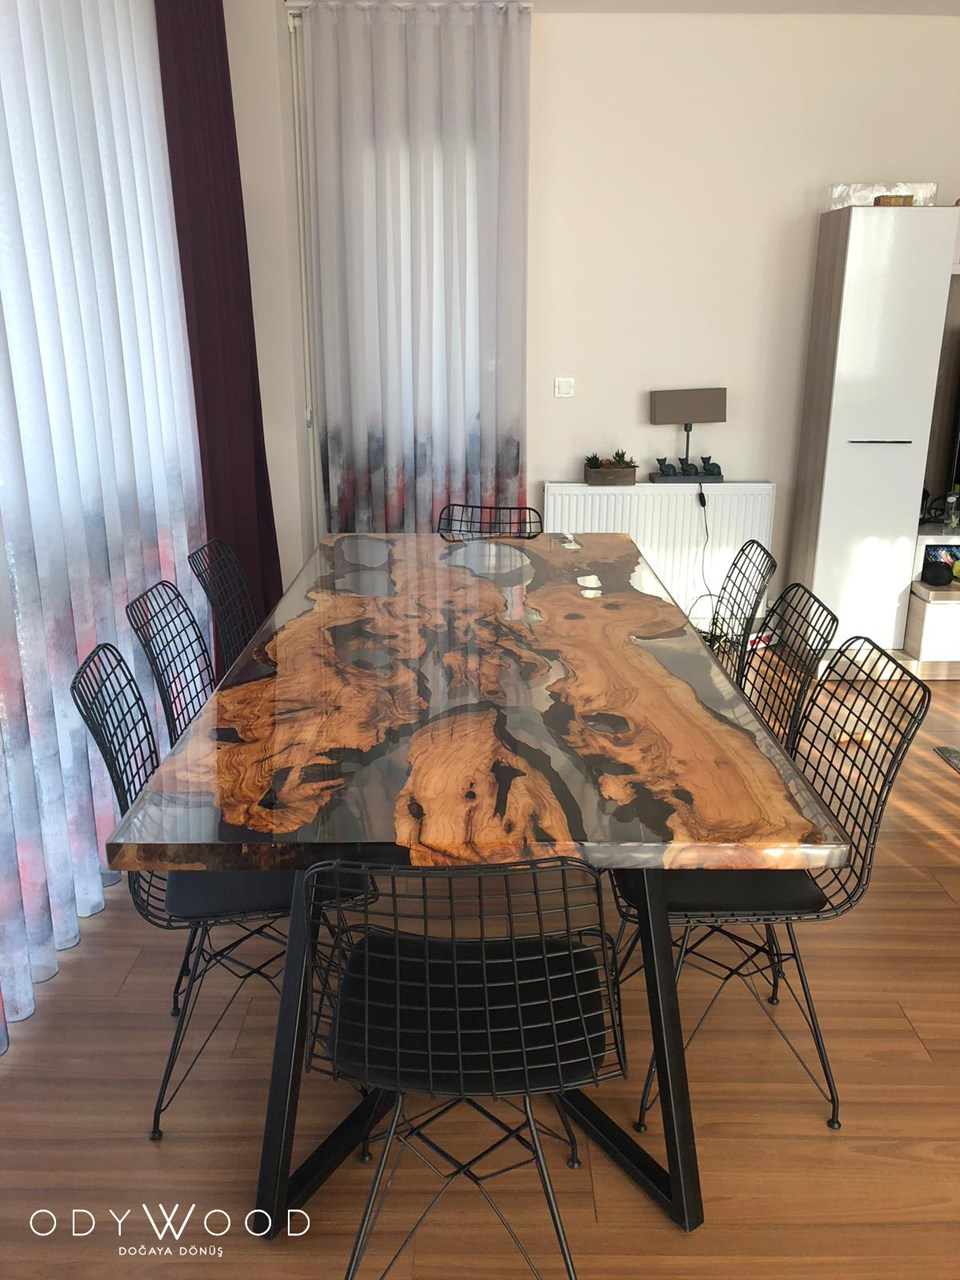 Live Edge Olive Slab Dining Table With Transparent Epoxy'in resmi